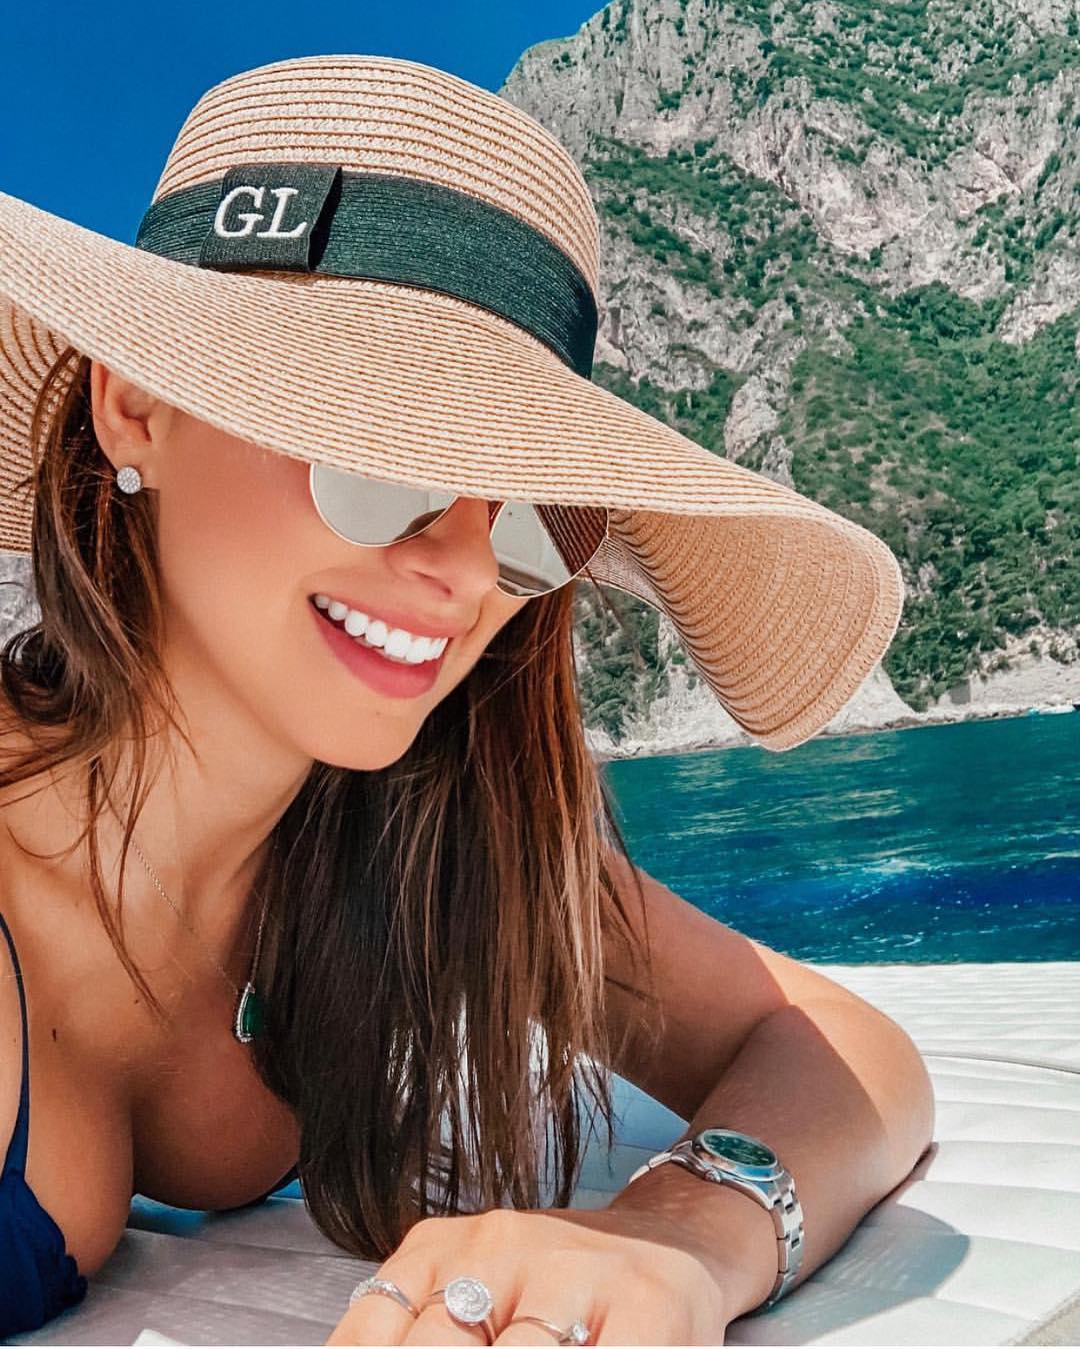 Summer Vacation Must Haves: Wide Brim Straw Hat And Rounded Sunglasses 2019